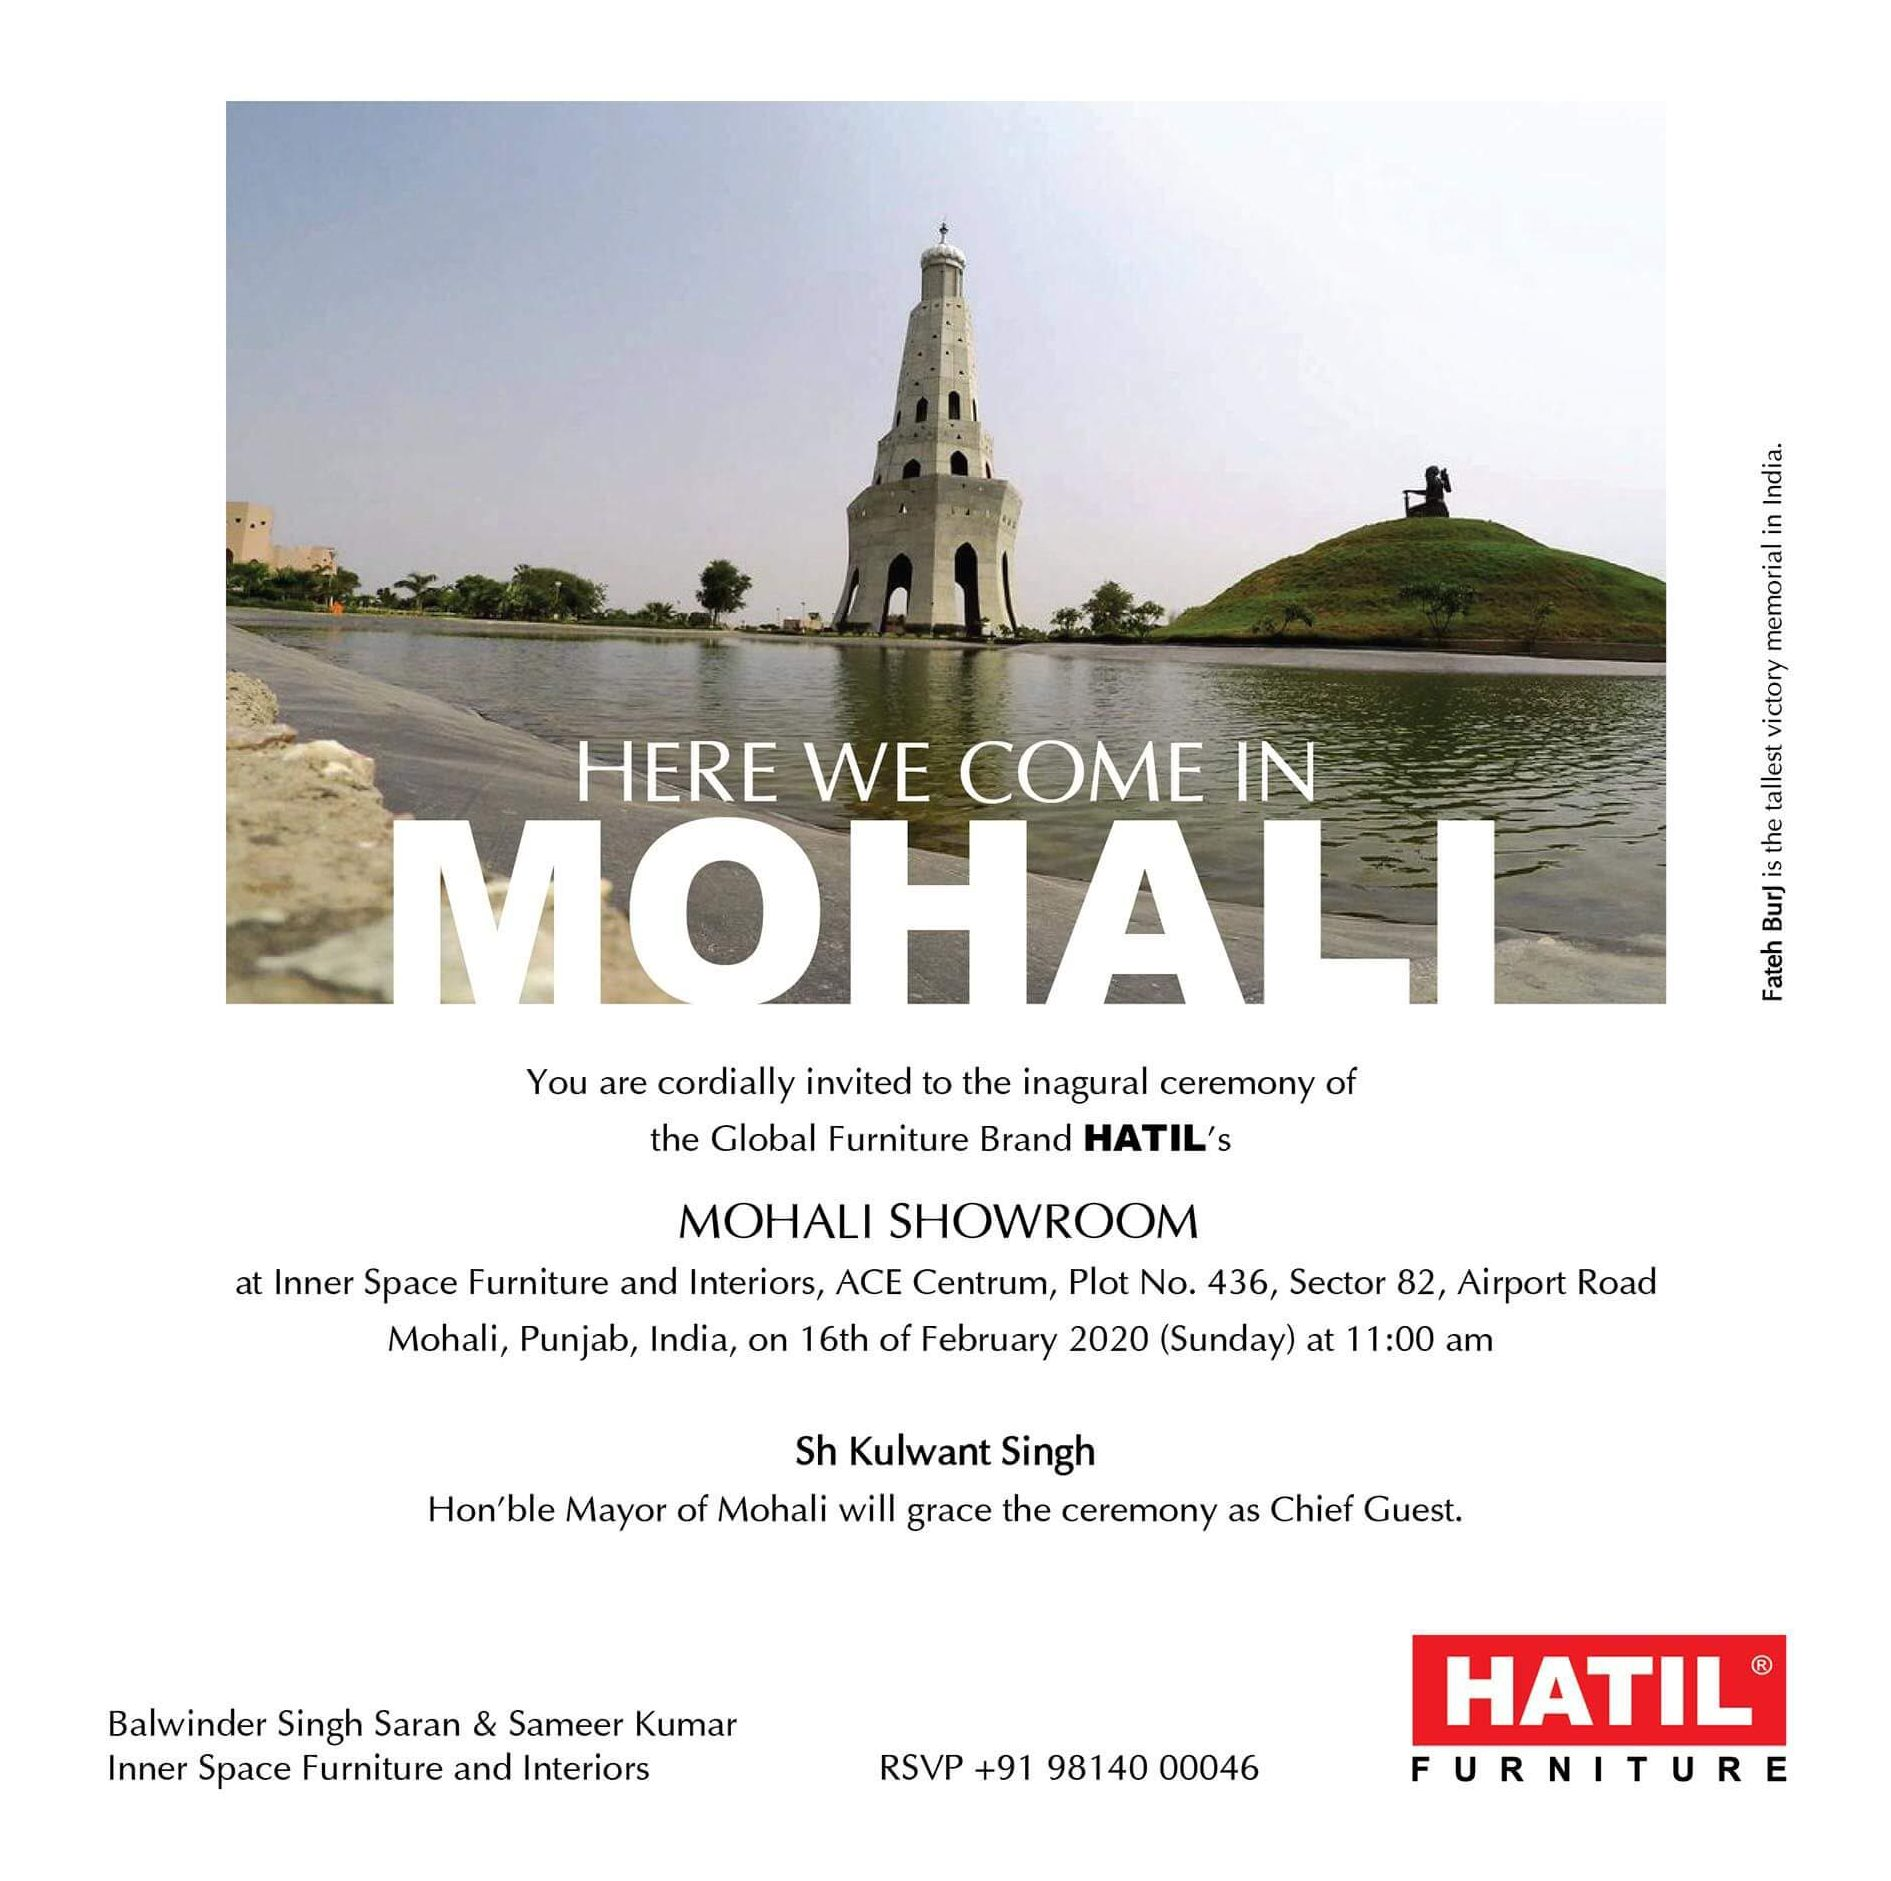 SHOWROOM OPENING INVITATION CARD - MOHALI, INDIA